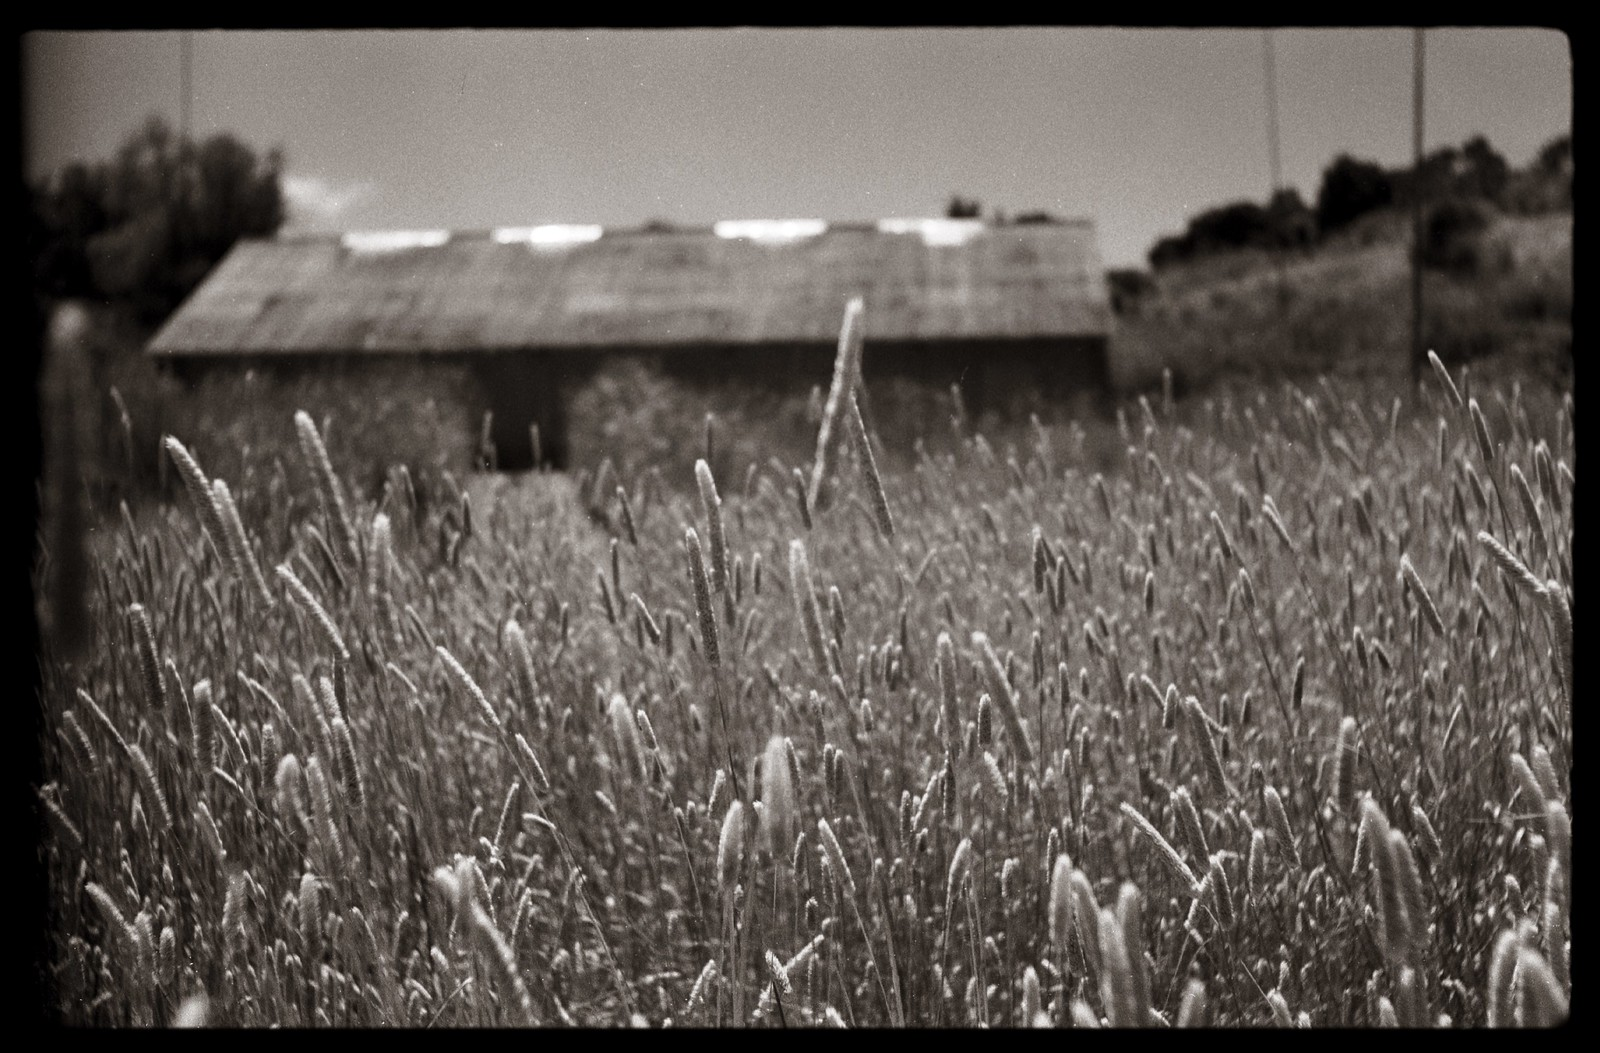 Grasses | by efo